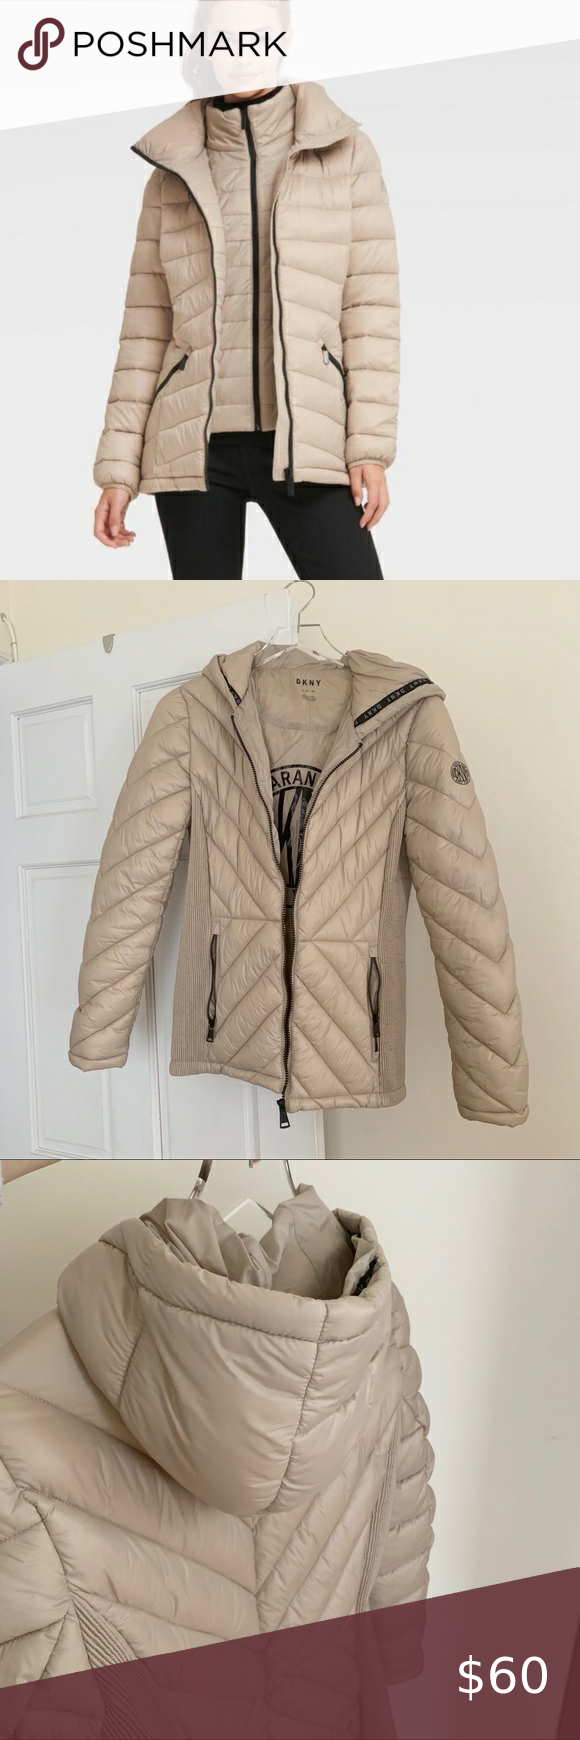 Dkny Beige Cozy Puffer Jacket Clothes Design Beige Puffer Beige Puffer Jacket [ 1740 x 580 Pixel ]